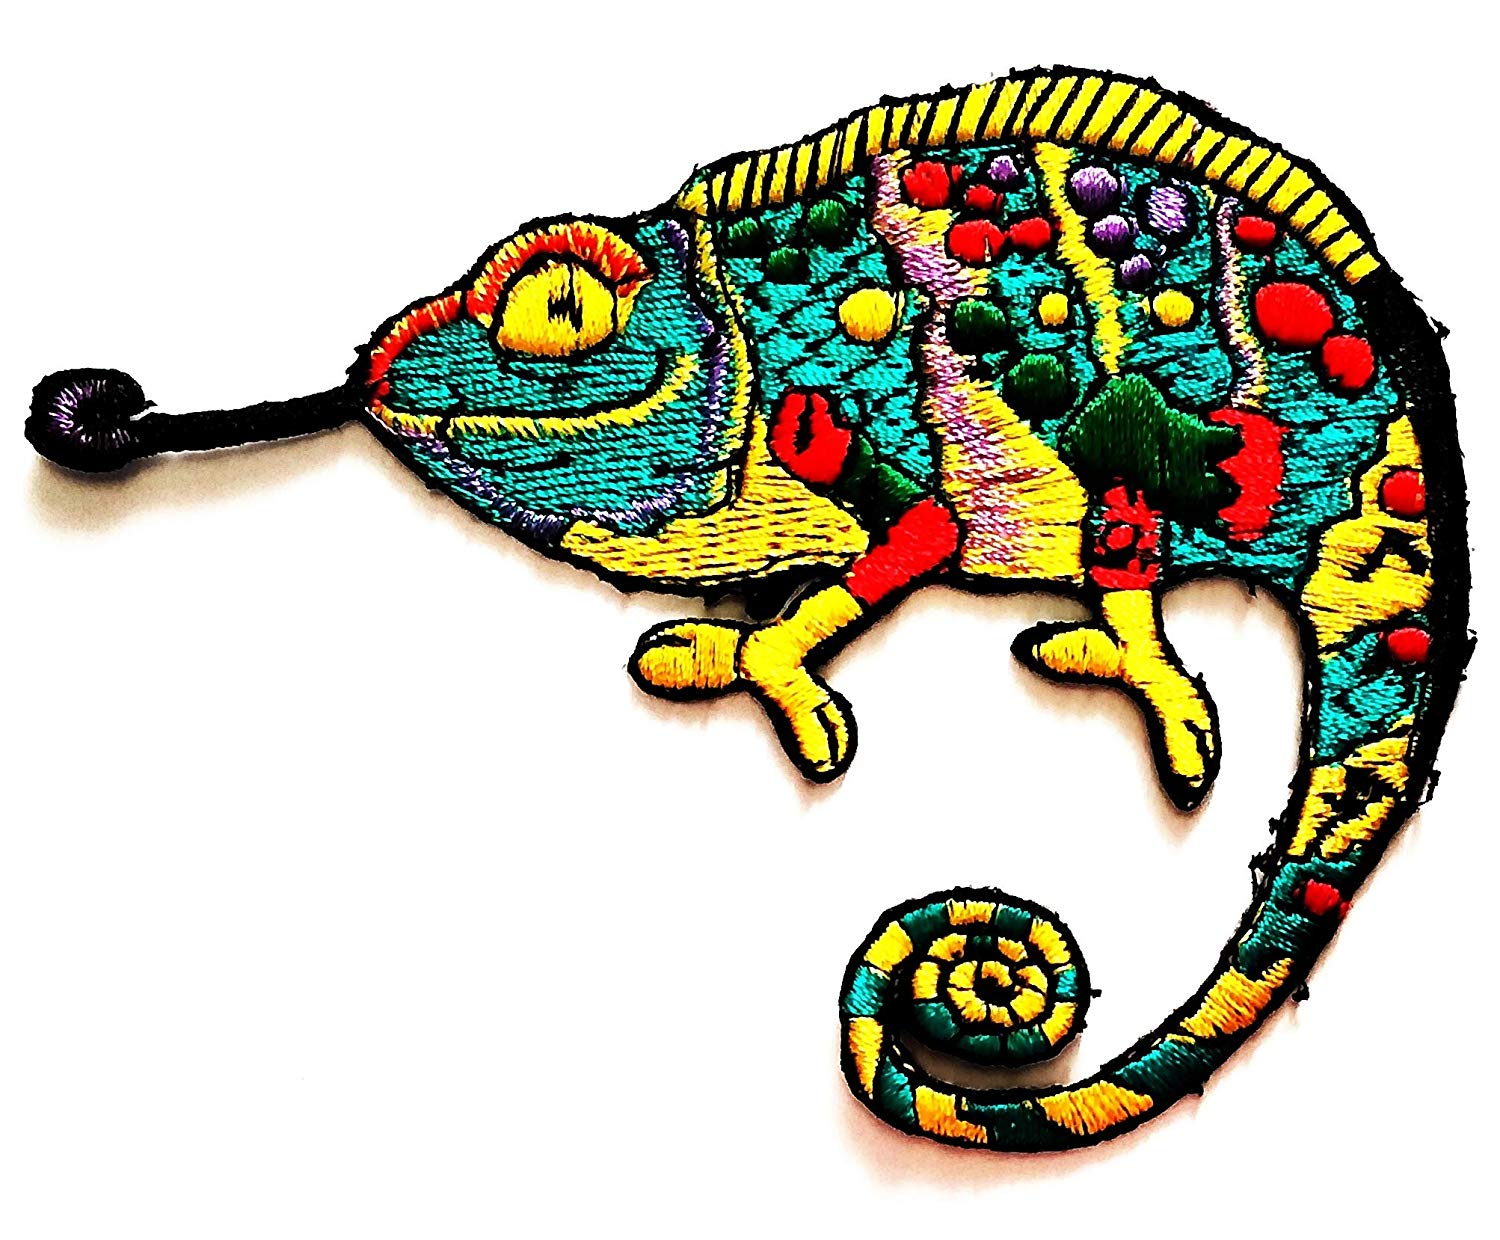 Nipitshop Patches Black Lizard Patch Chameleon Amazing Animal Patches Iron On Cartoon Apparel for Clothes Kids Stickers DIY Cheap Embroidered Patches for Sewing Kids Clothing